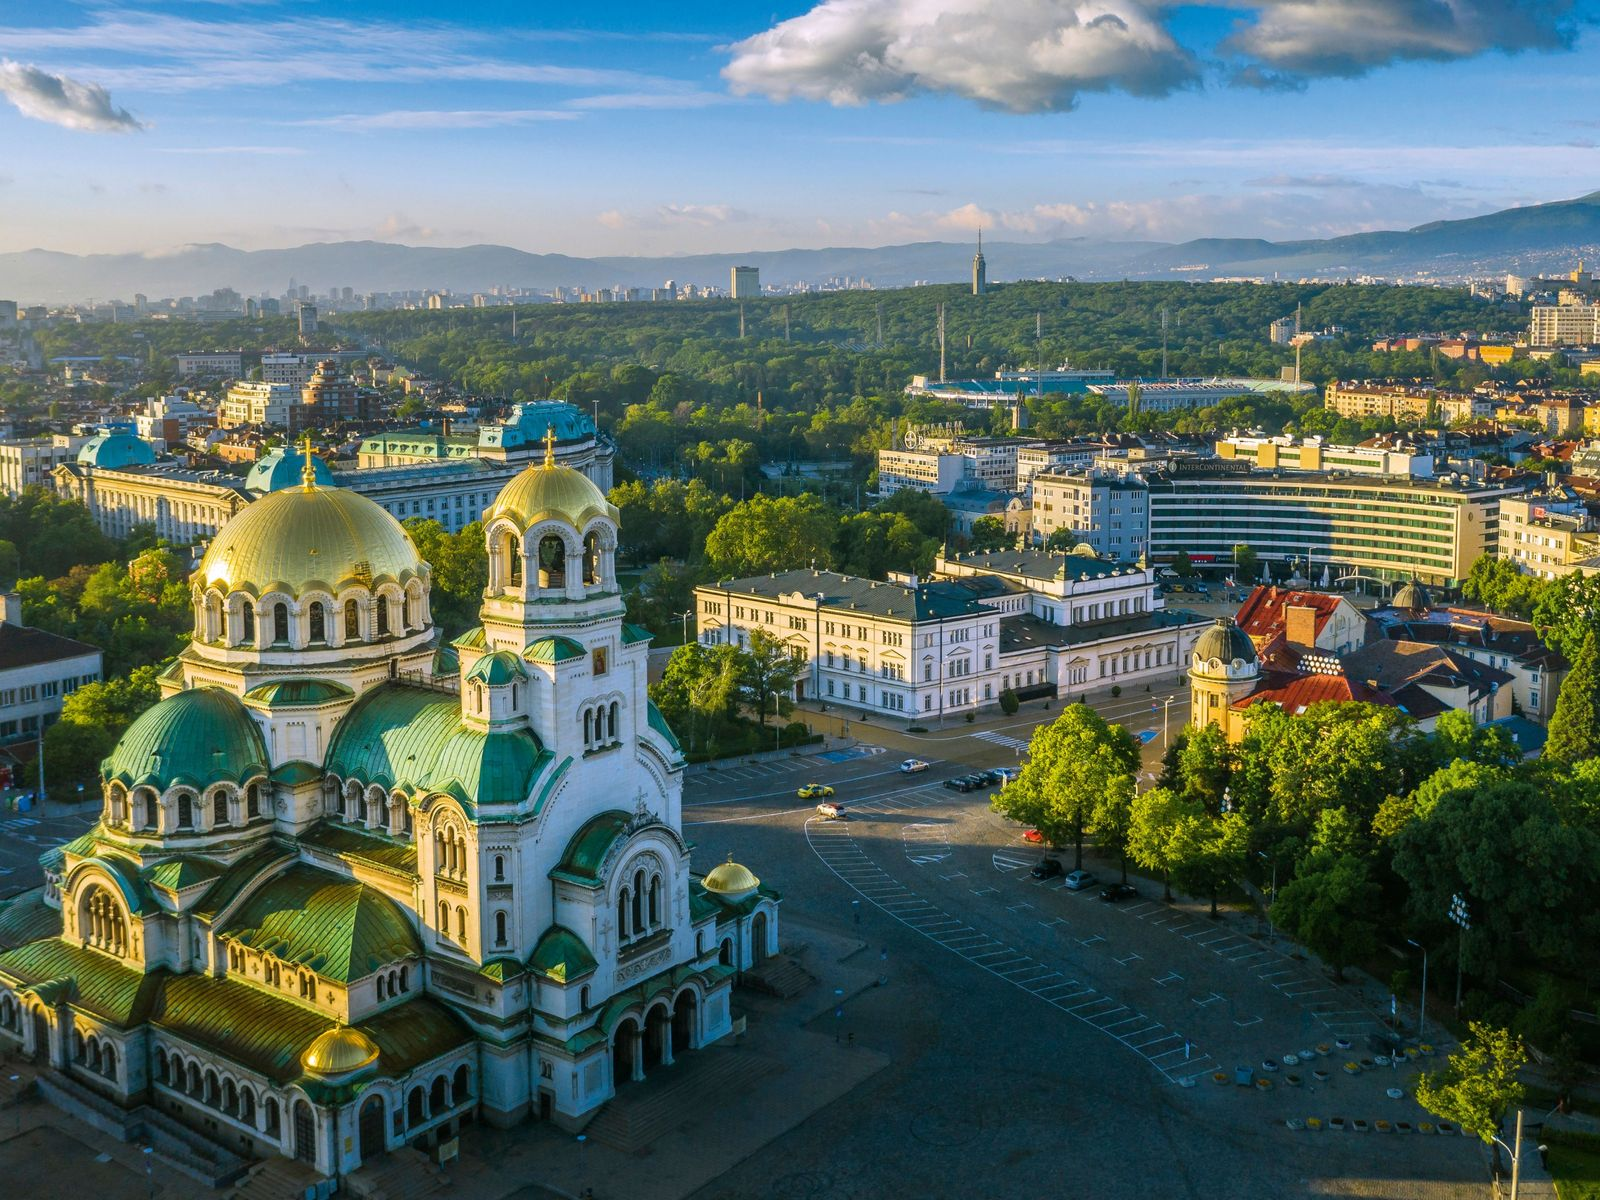 The Bulgarian Orthodox Alexander Nevsky Cathedral